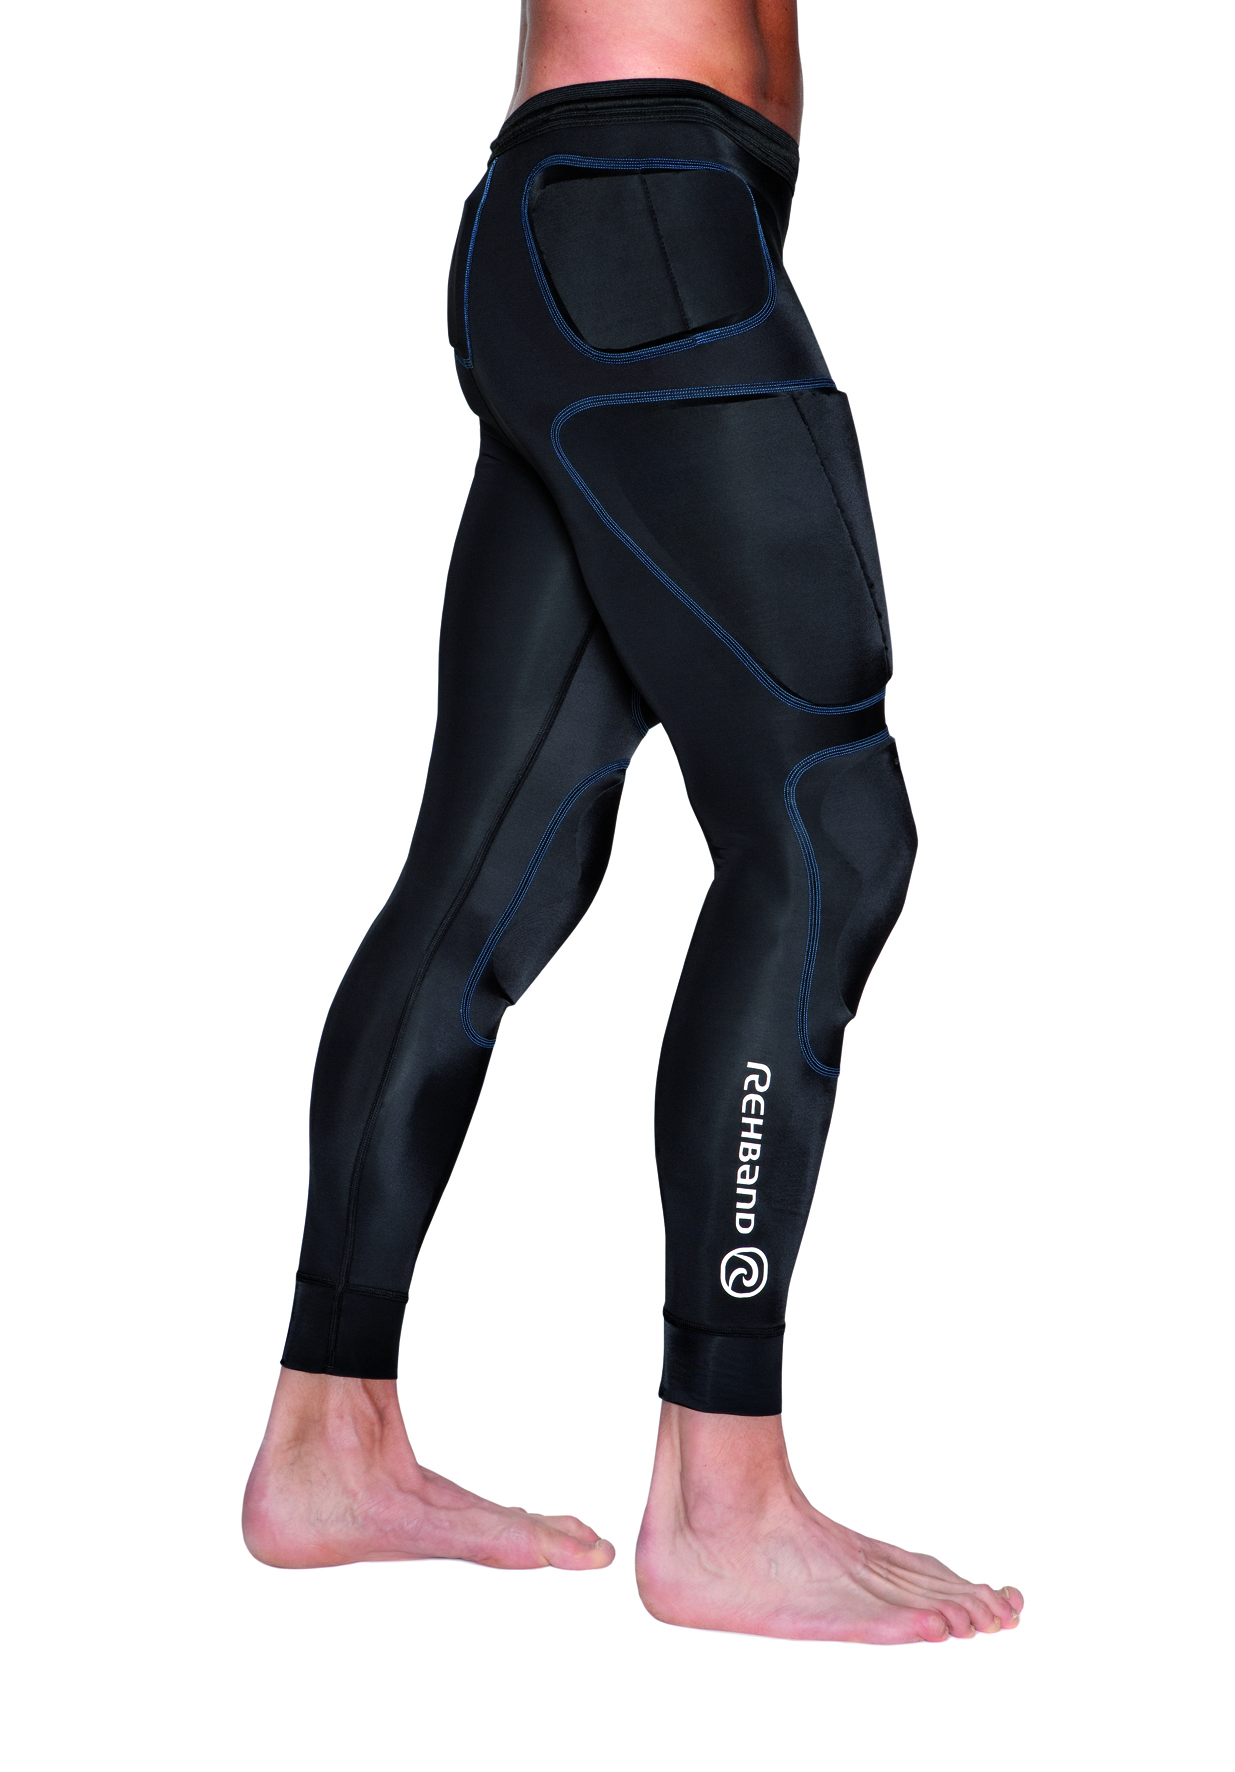 ceeed04de3 Compression Protective Tights – 7713 (Padding) – END OF RANGE